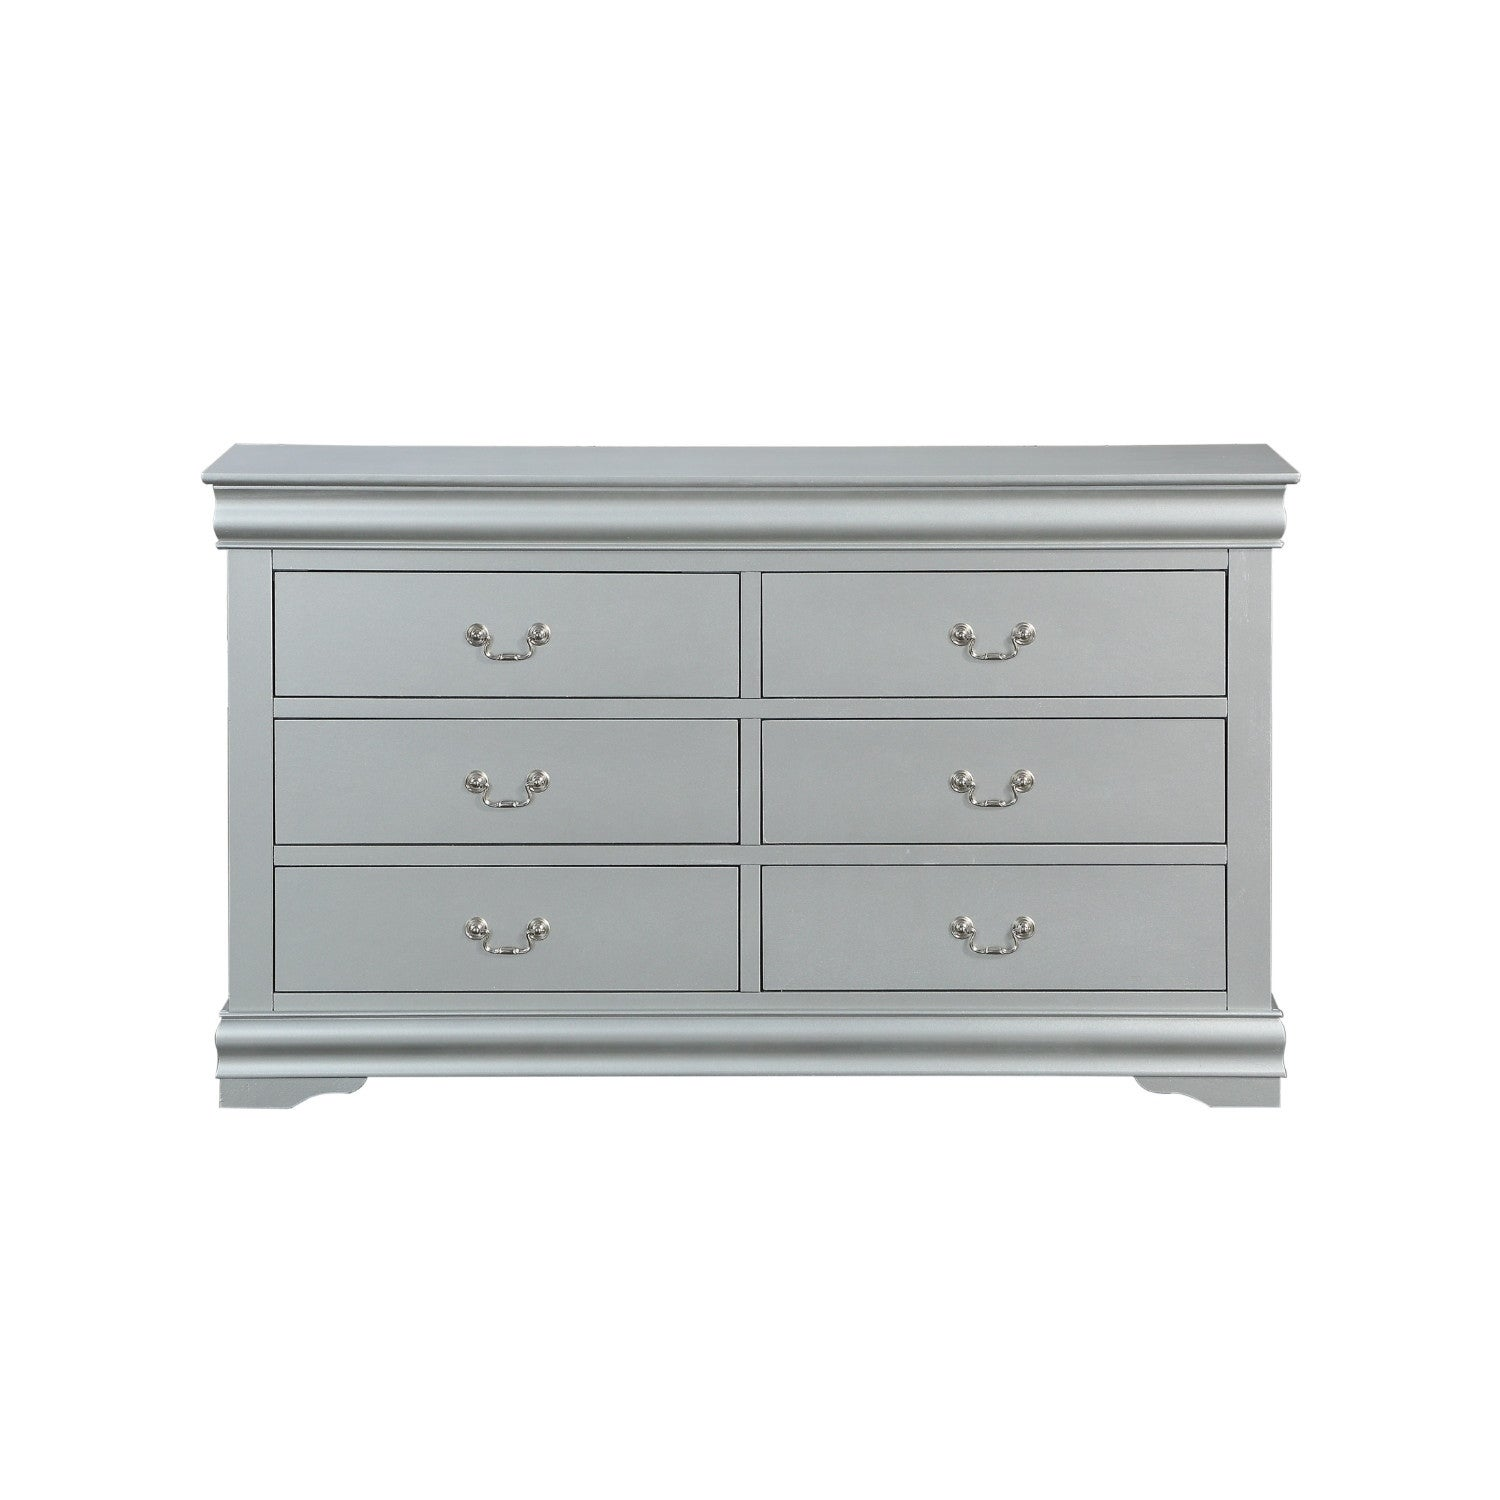 Six Drawers Wooden Dresser With Metal Handles And Bracket Base Gray